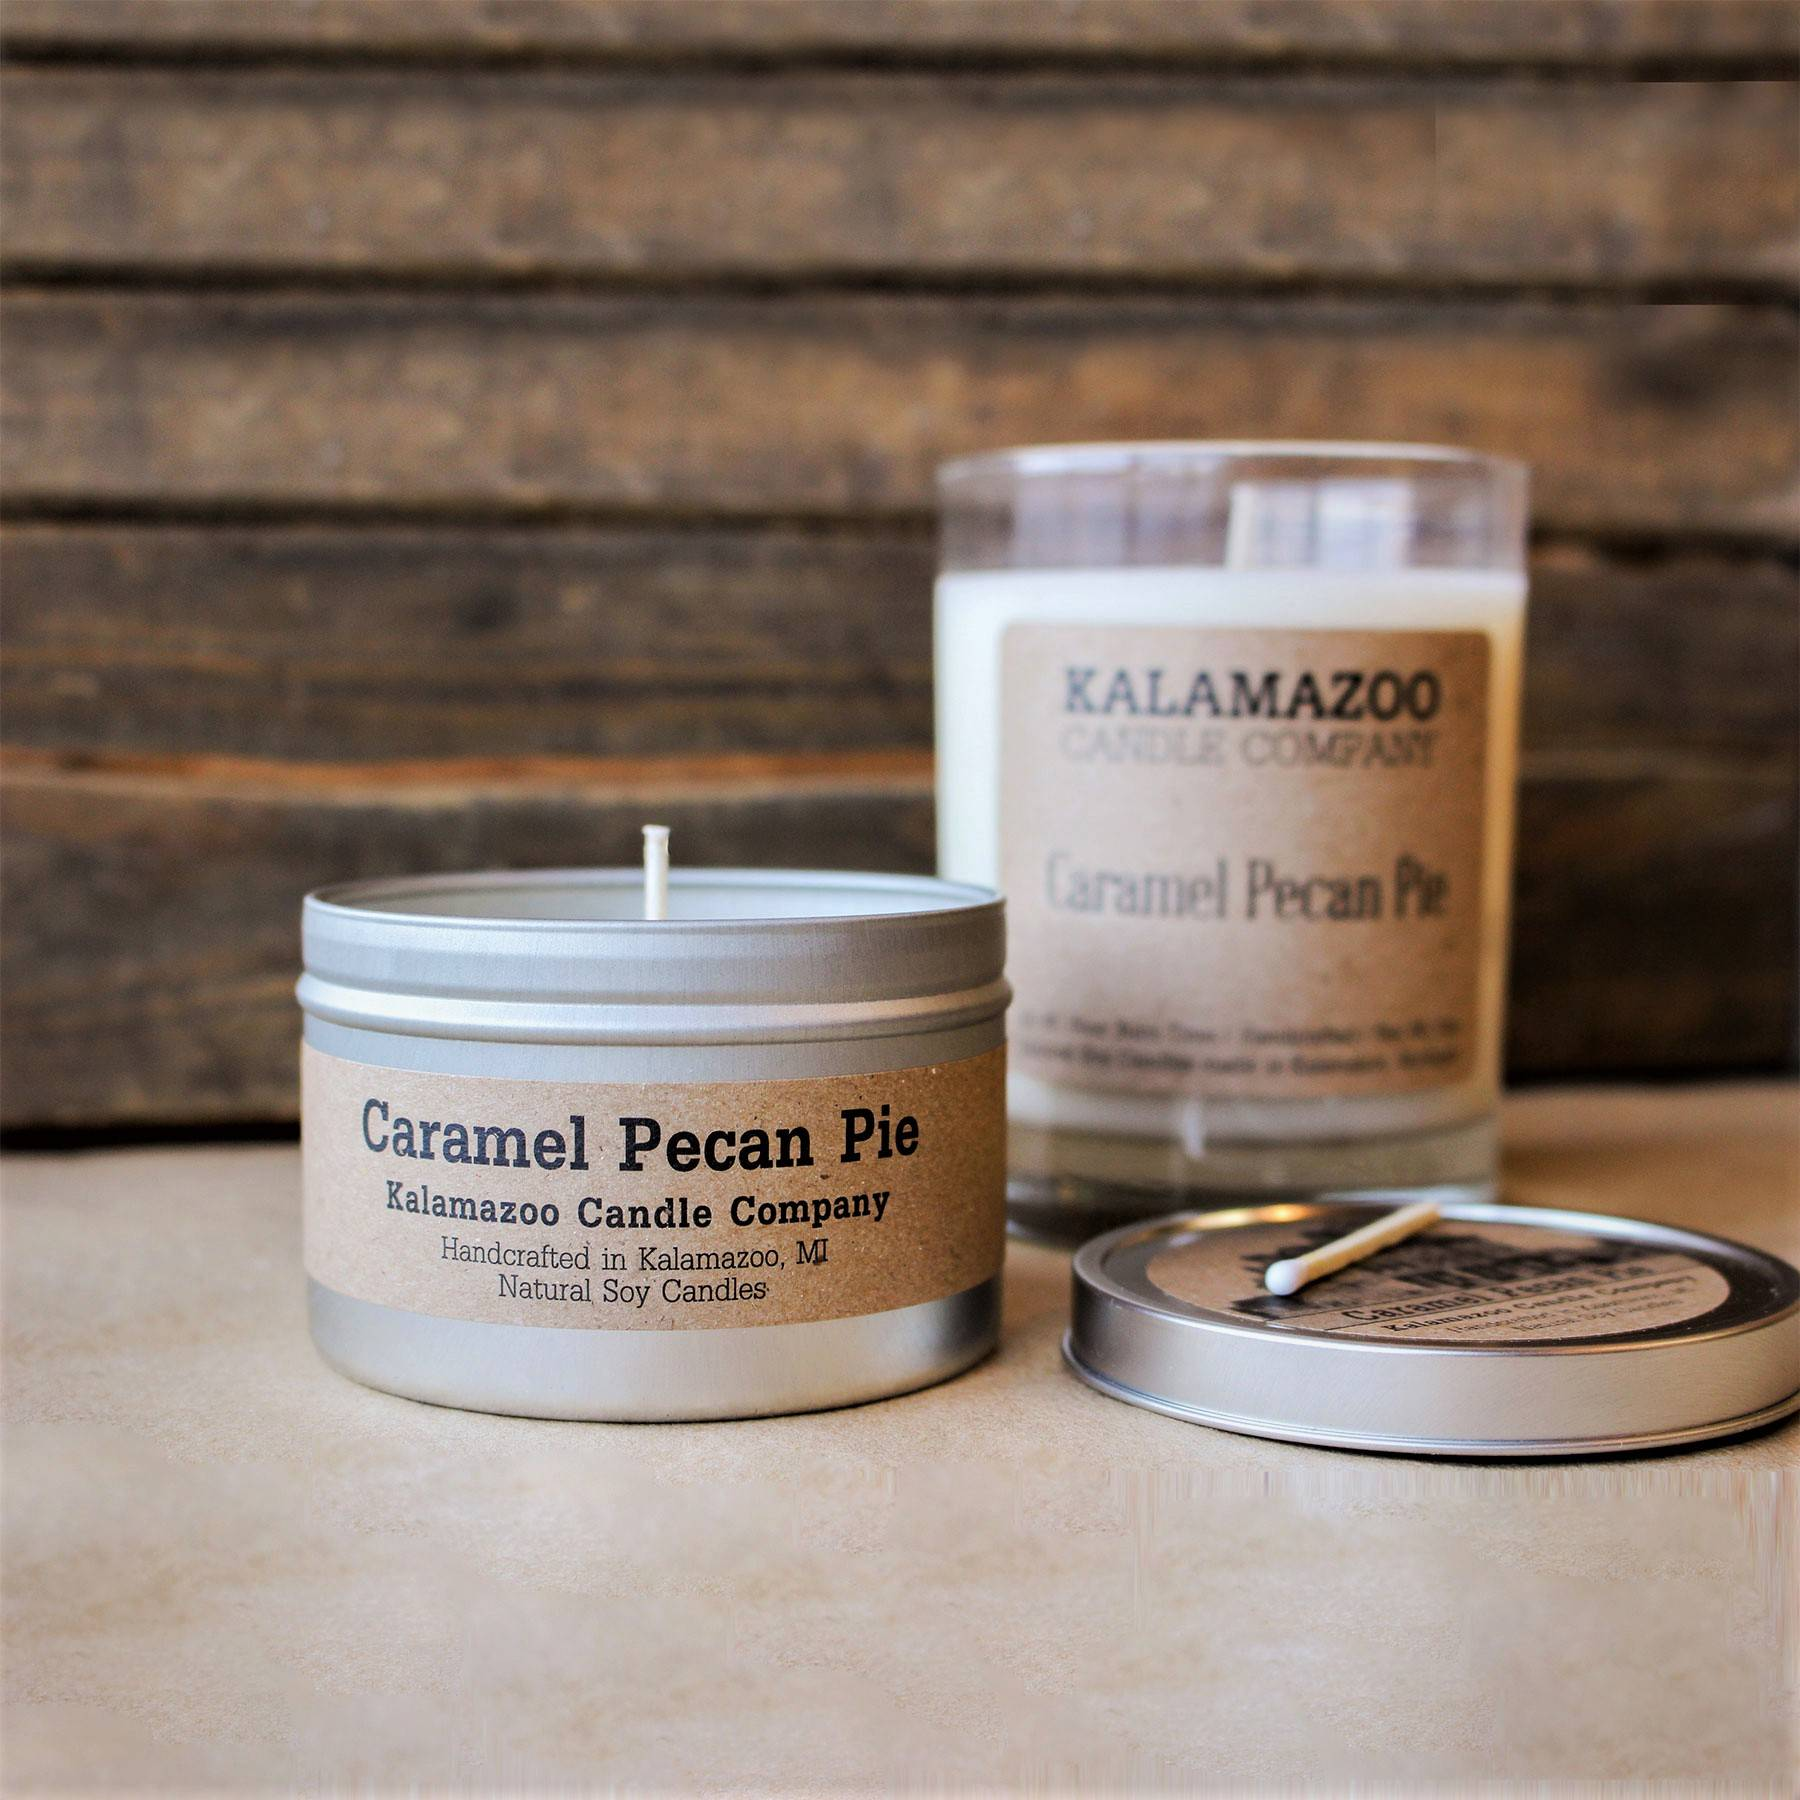 Caramel Pecan Pie natural soy wax scented candle